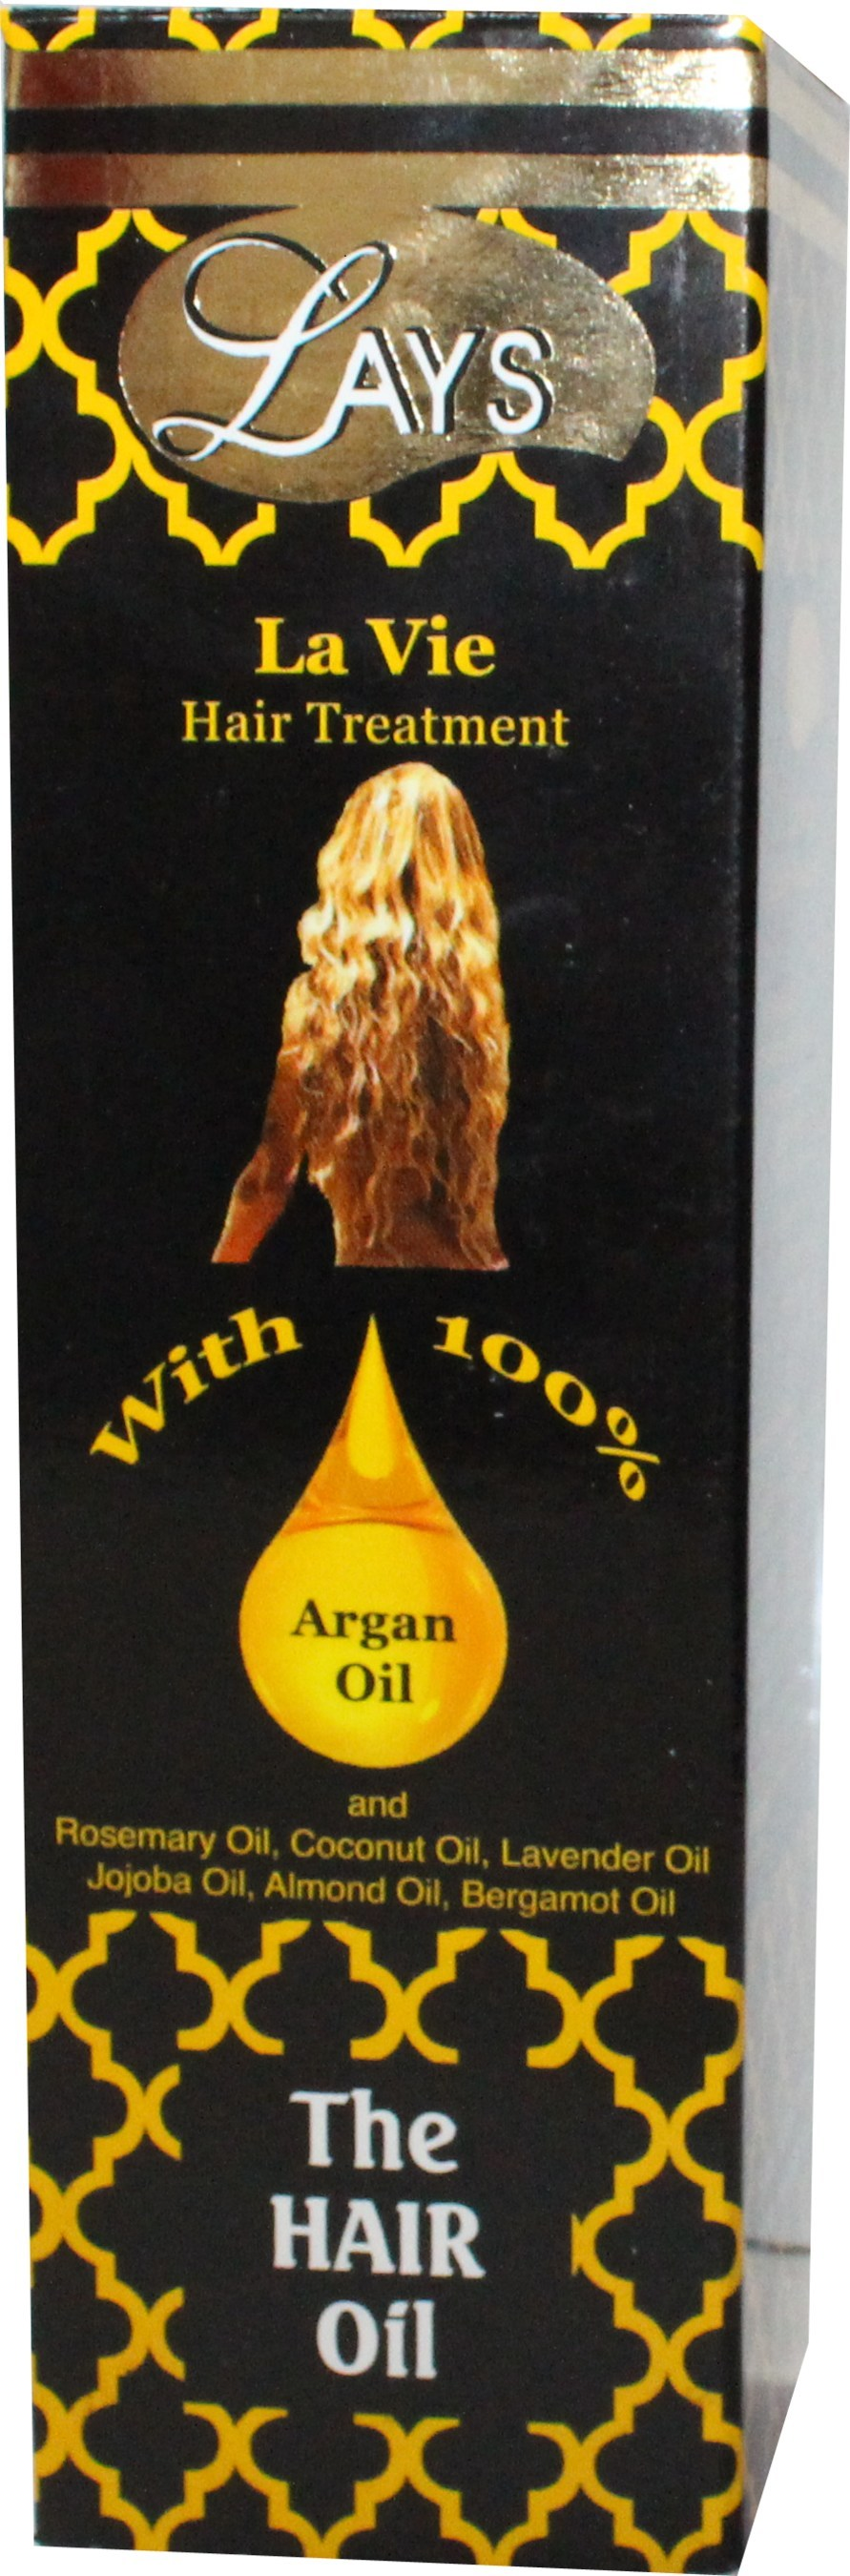 Lays Hair-Oil with Moroccan Argan Oil is a hair treatment made from argan, rosemary, coconut, lavender, jojoba, almond and bergamot oils.